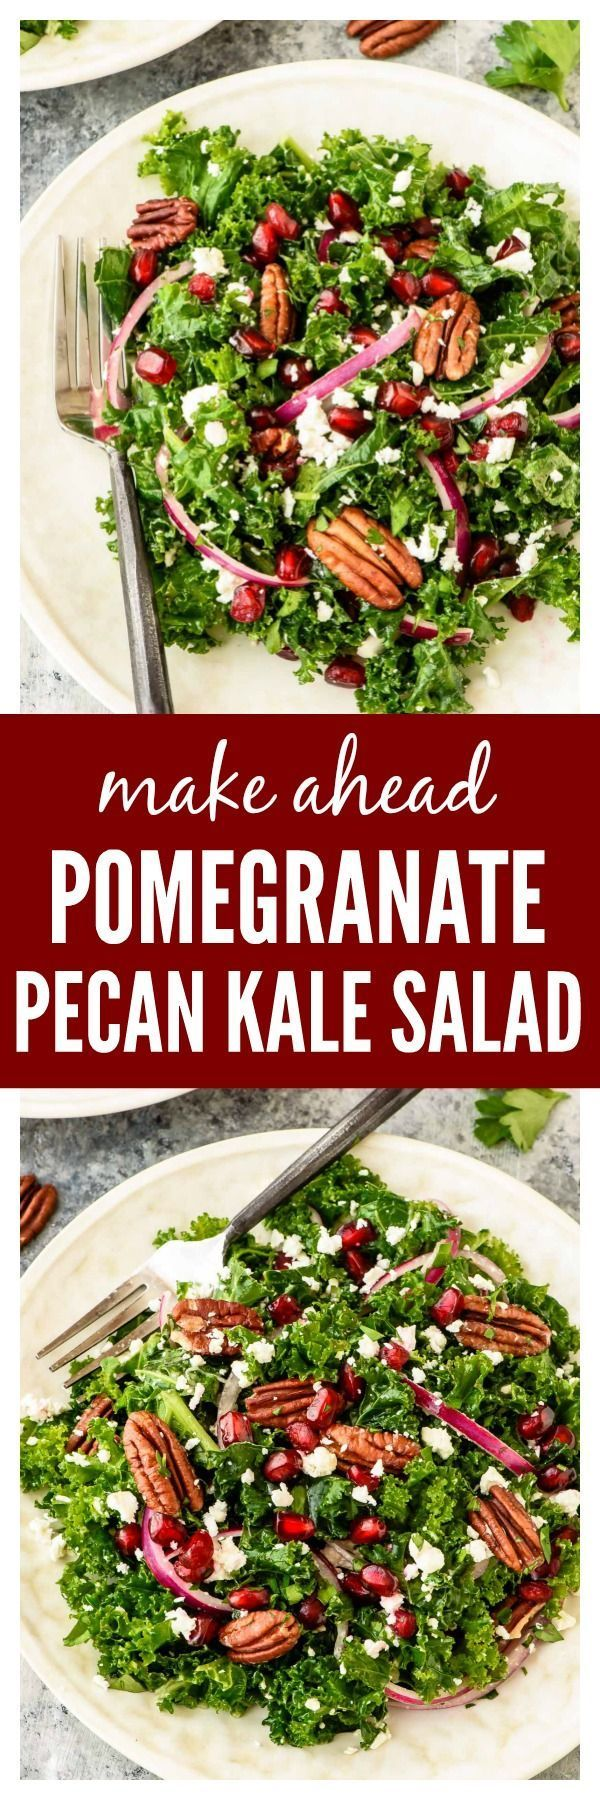 A bright and beautiful Kale Salad with Pomegranate and Pecans that's easy enough for a light lunch but special enough for a holiday party. Make-ahead recipe that's perfect for entertaining or weekly meal prep.